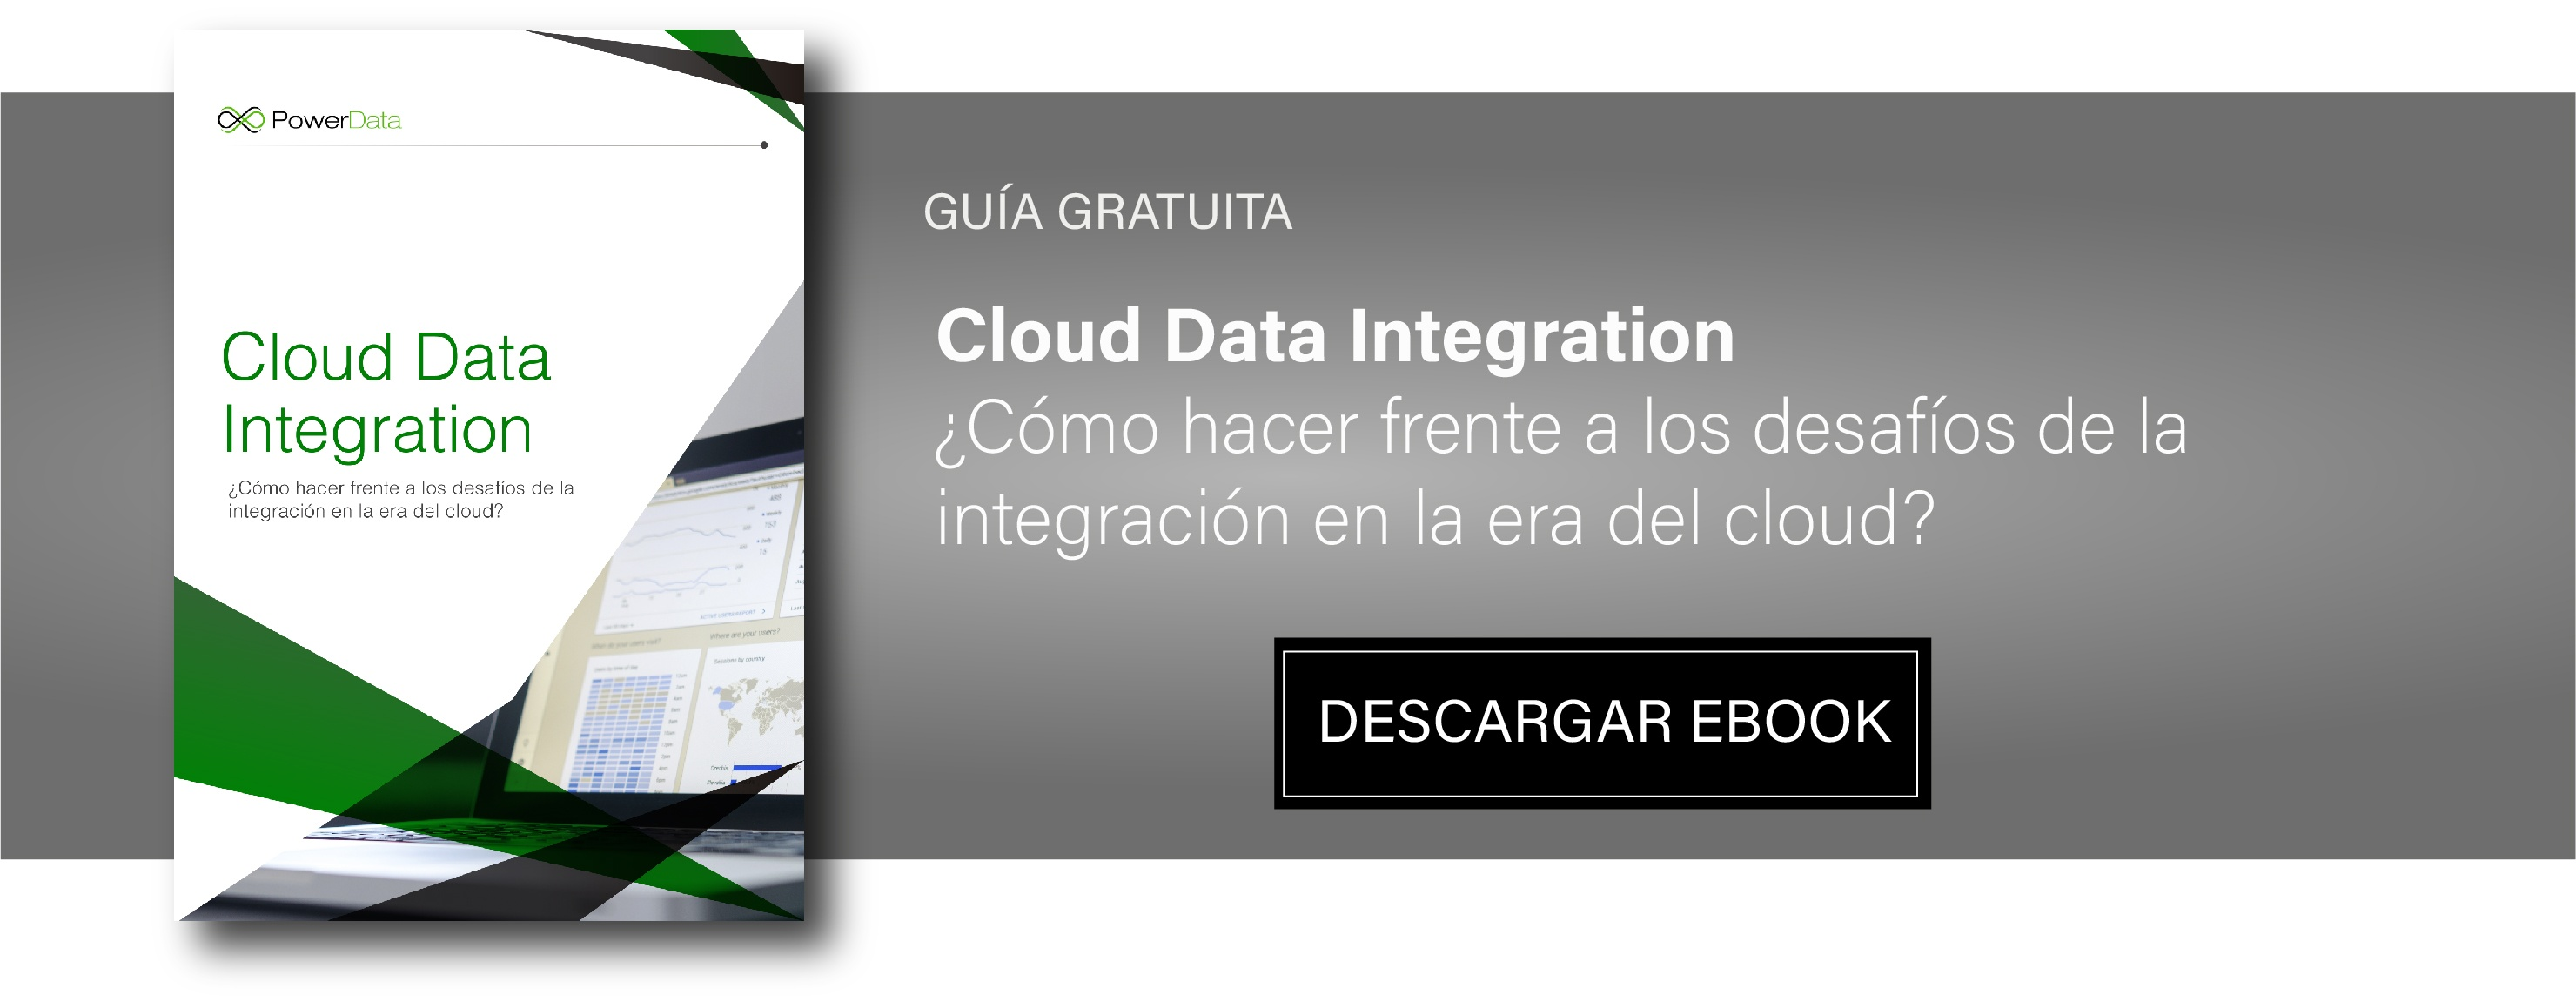 Cloud Data Integration